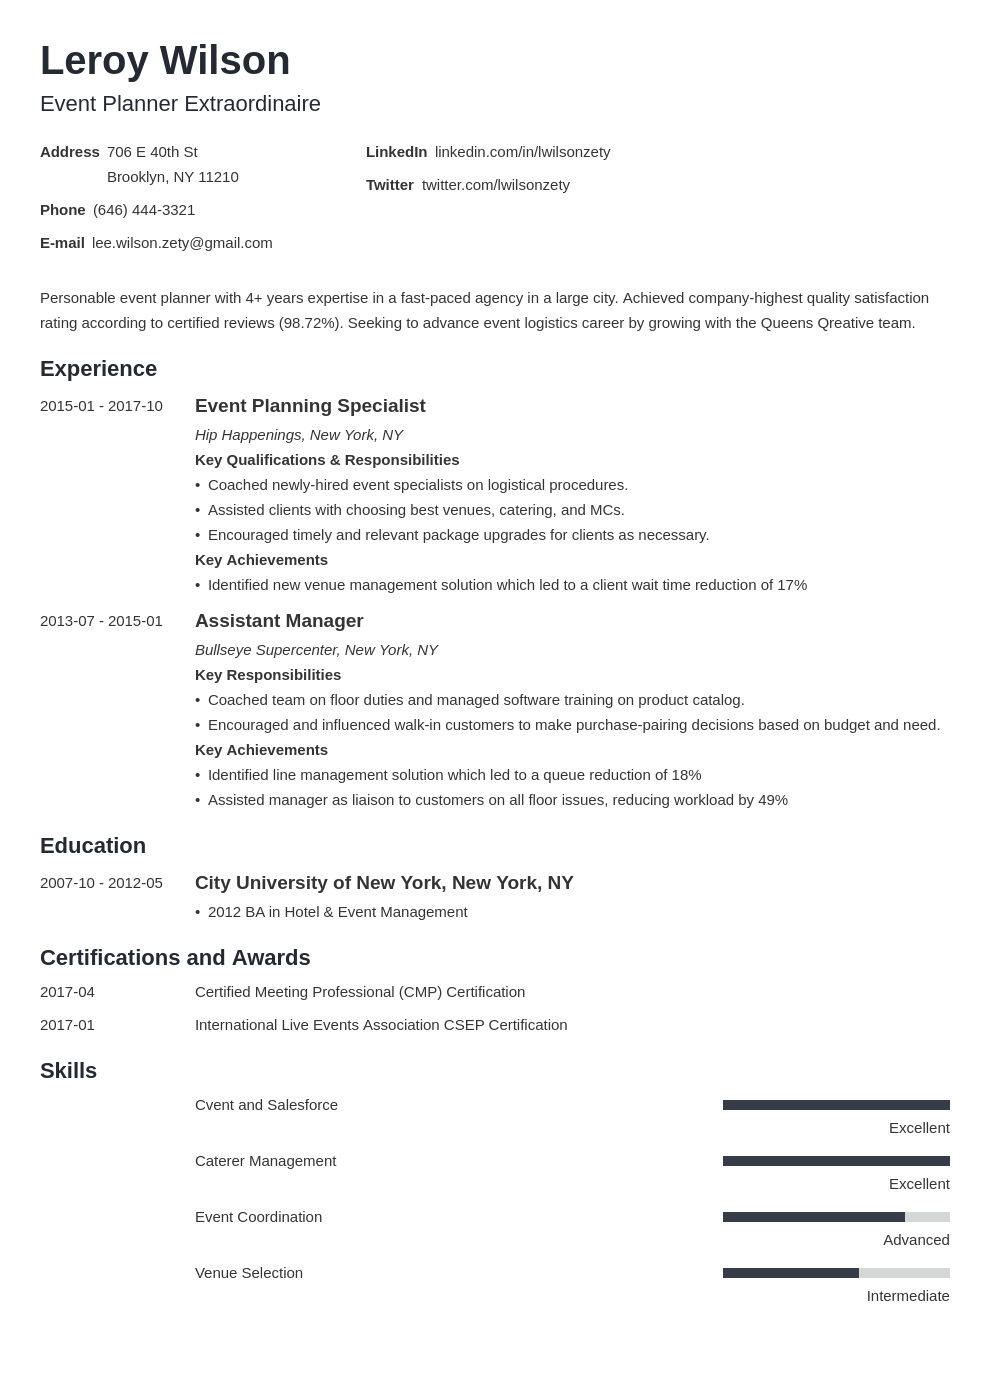 event planner resume example template minimo in 2020